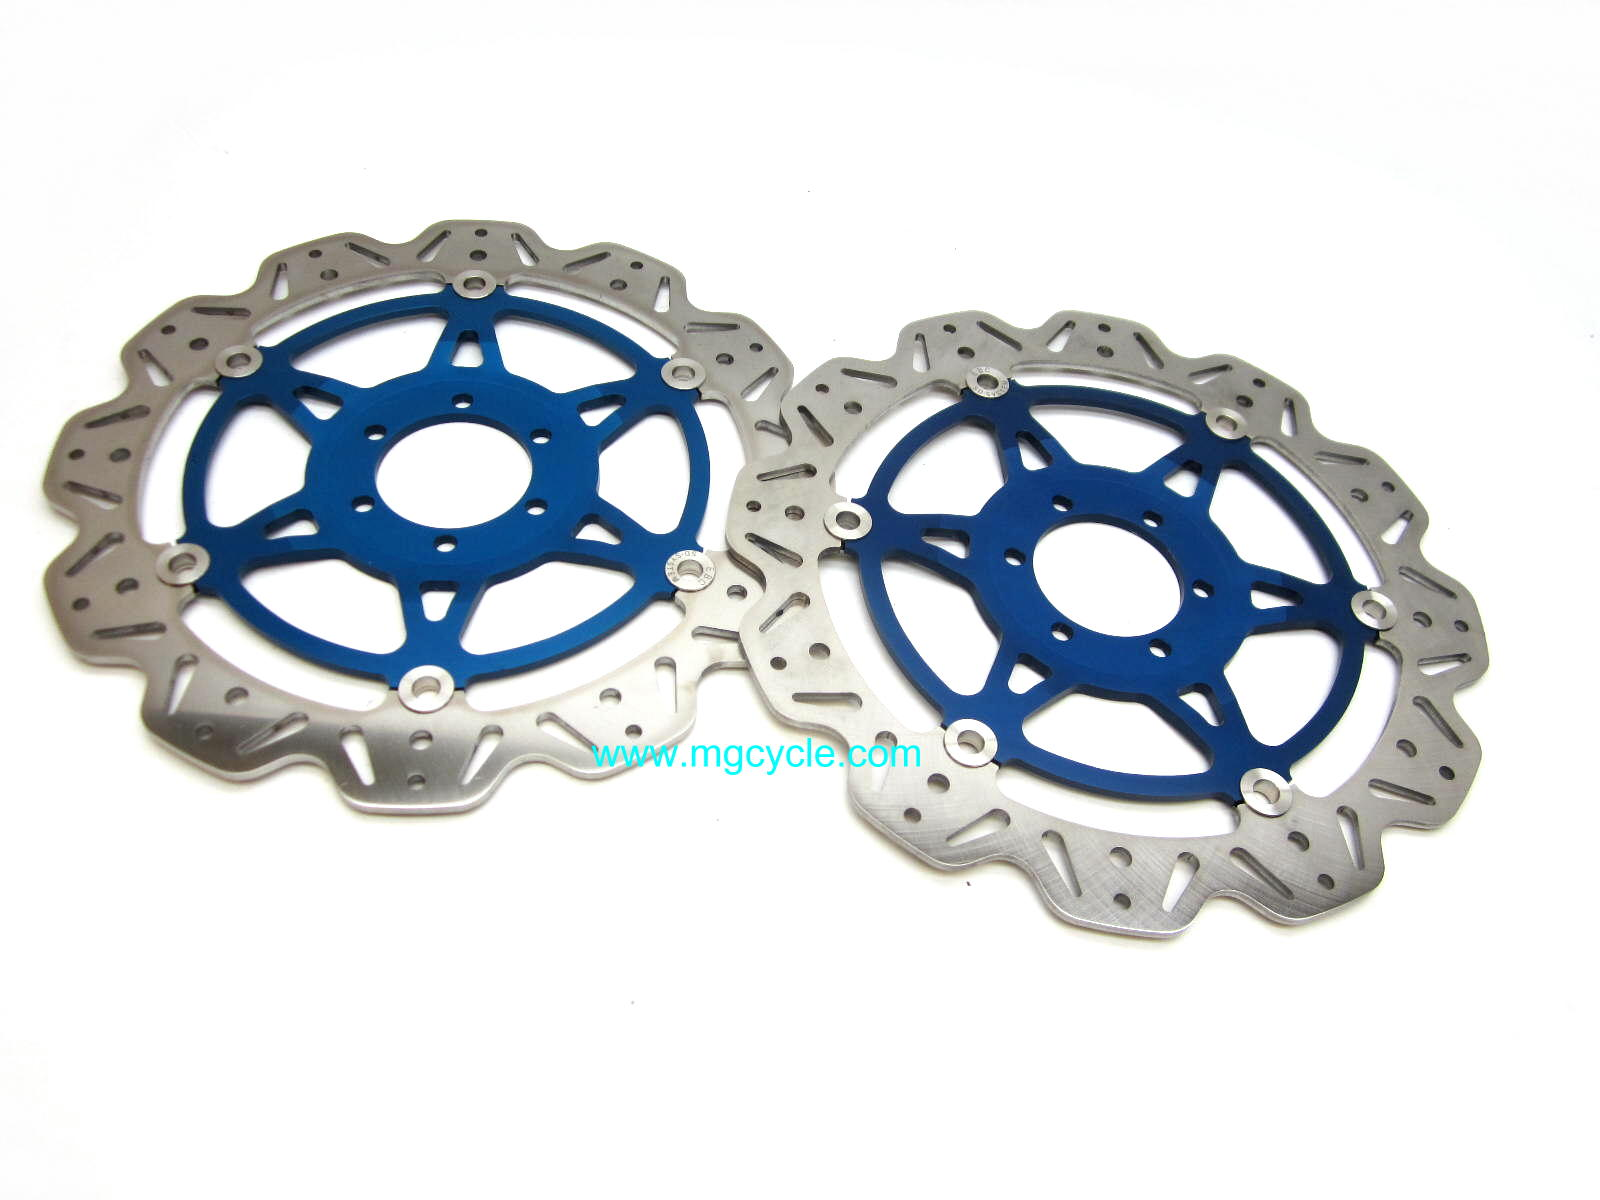 Pair of EBC Blue VEE-ROTOR discs for Griso 1100, Griso 1200 8V